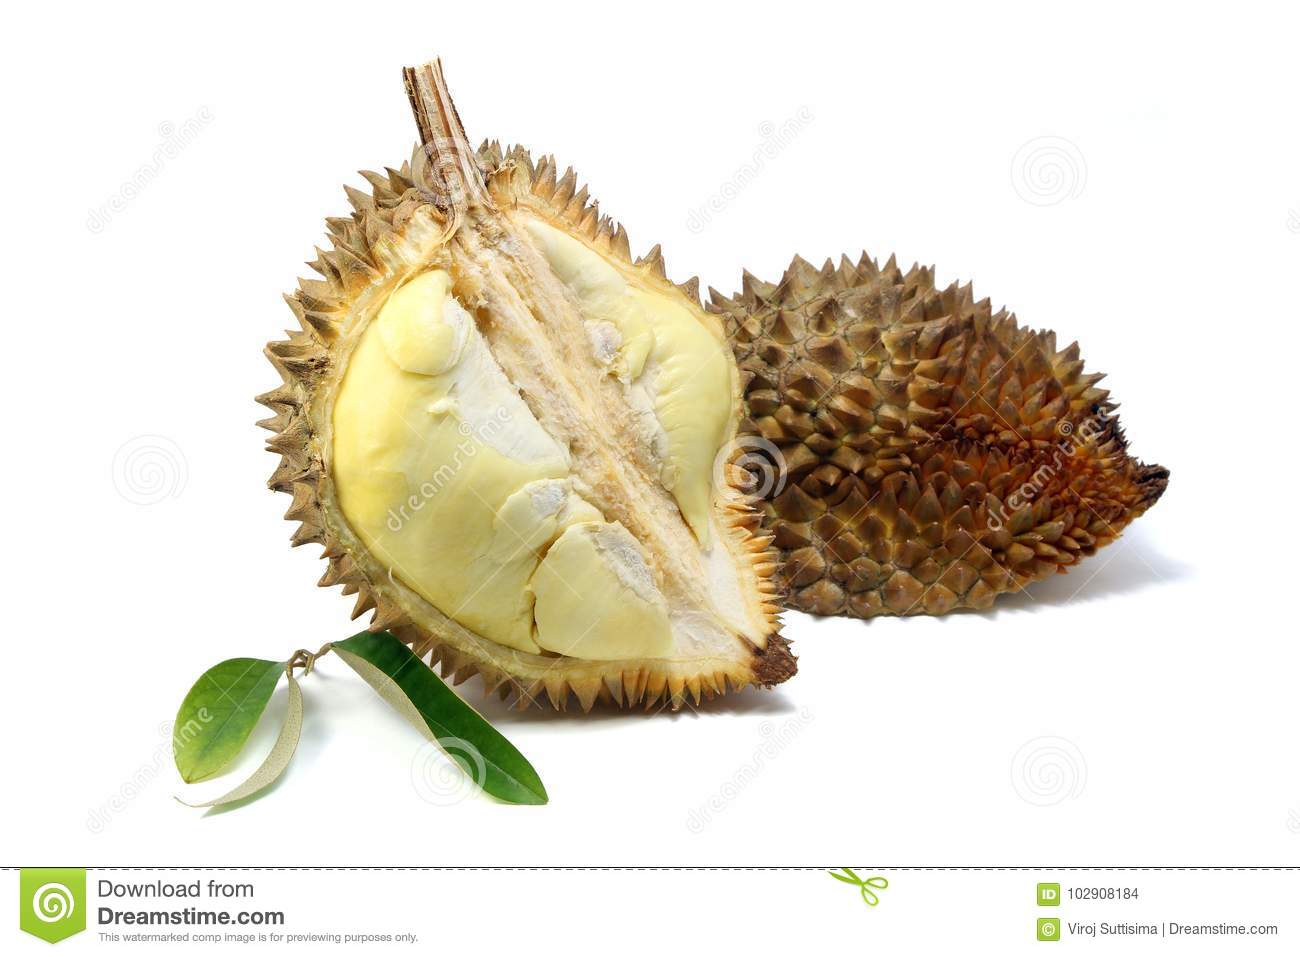 Yellow flesh of Durian and Durian leaf on white background.